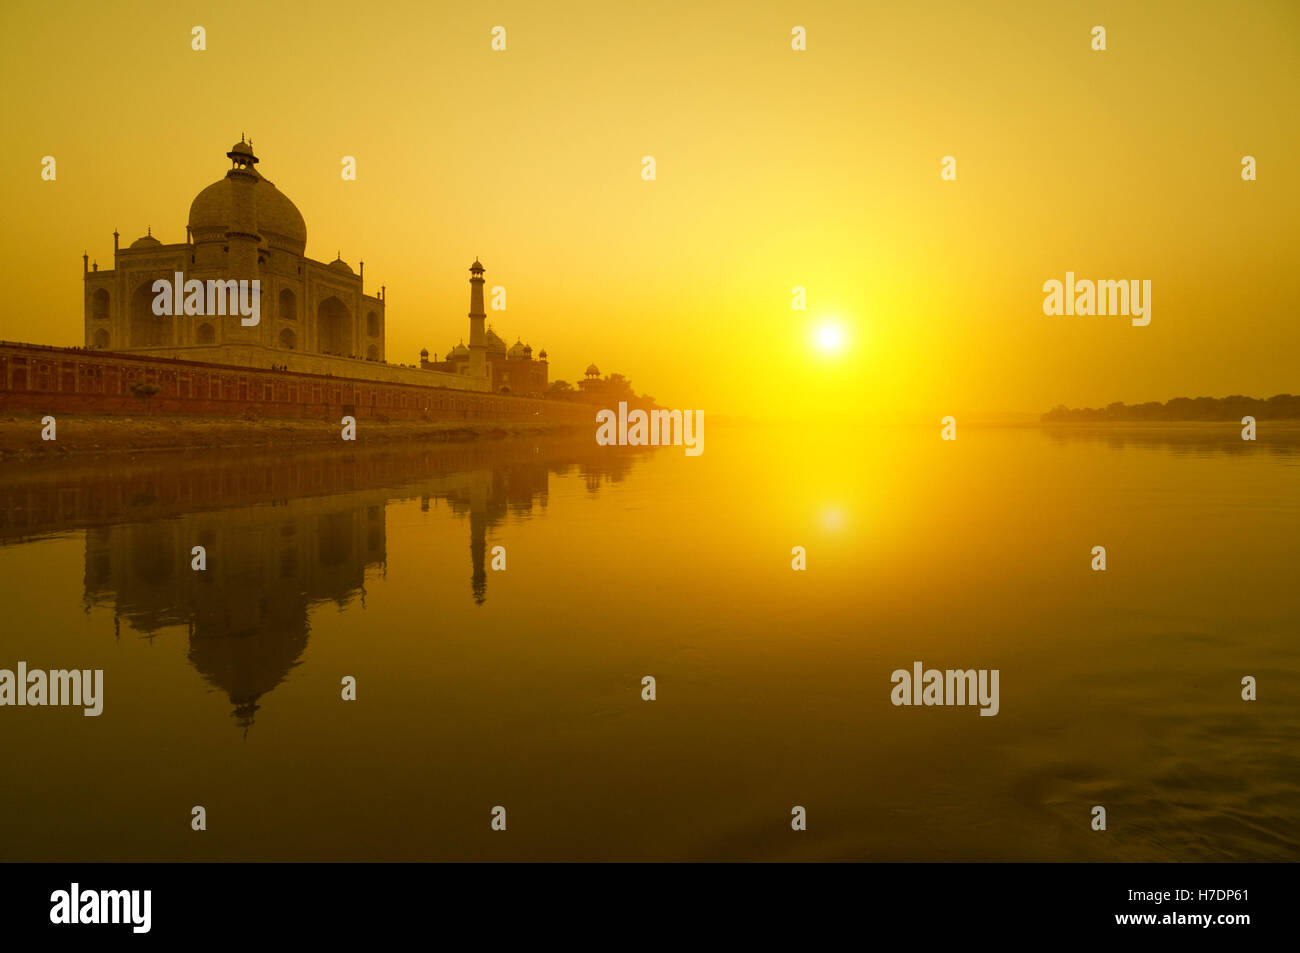 Taj Mahal sunset - Stock Image